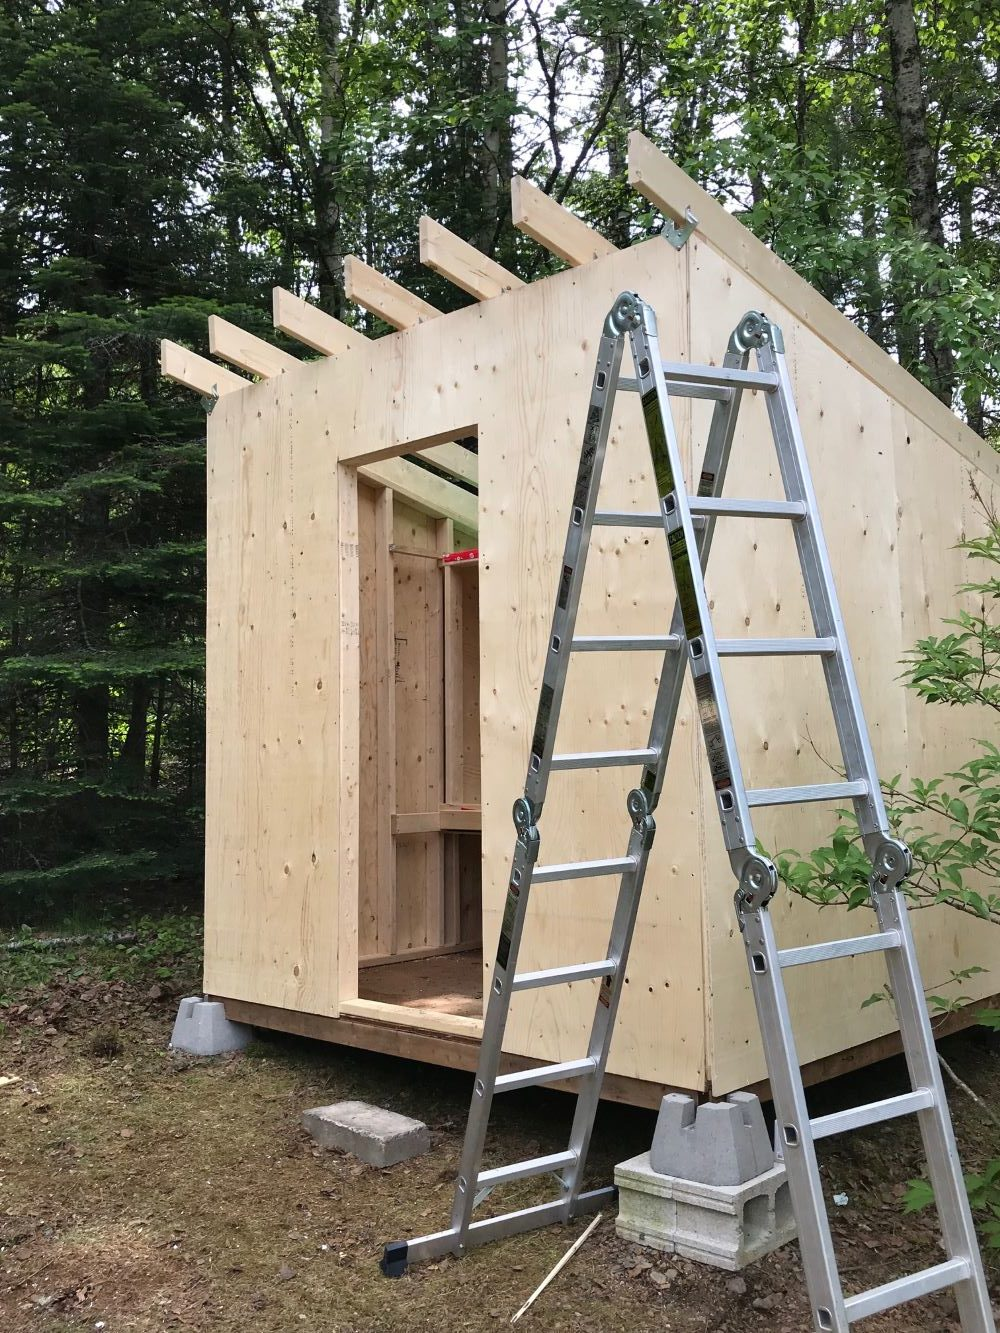 How to Build a Chicken Coop Step-by-Step